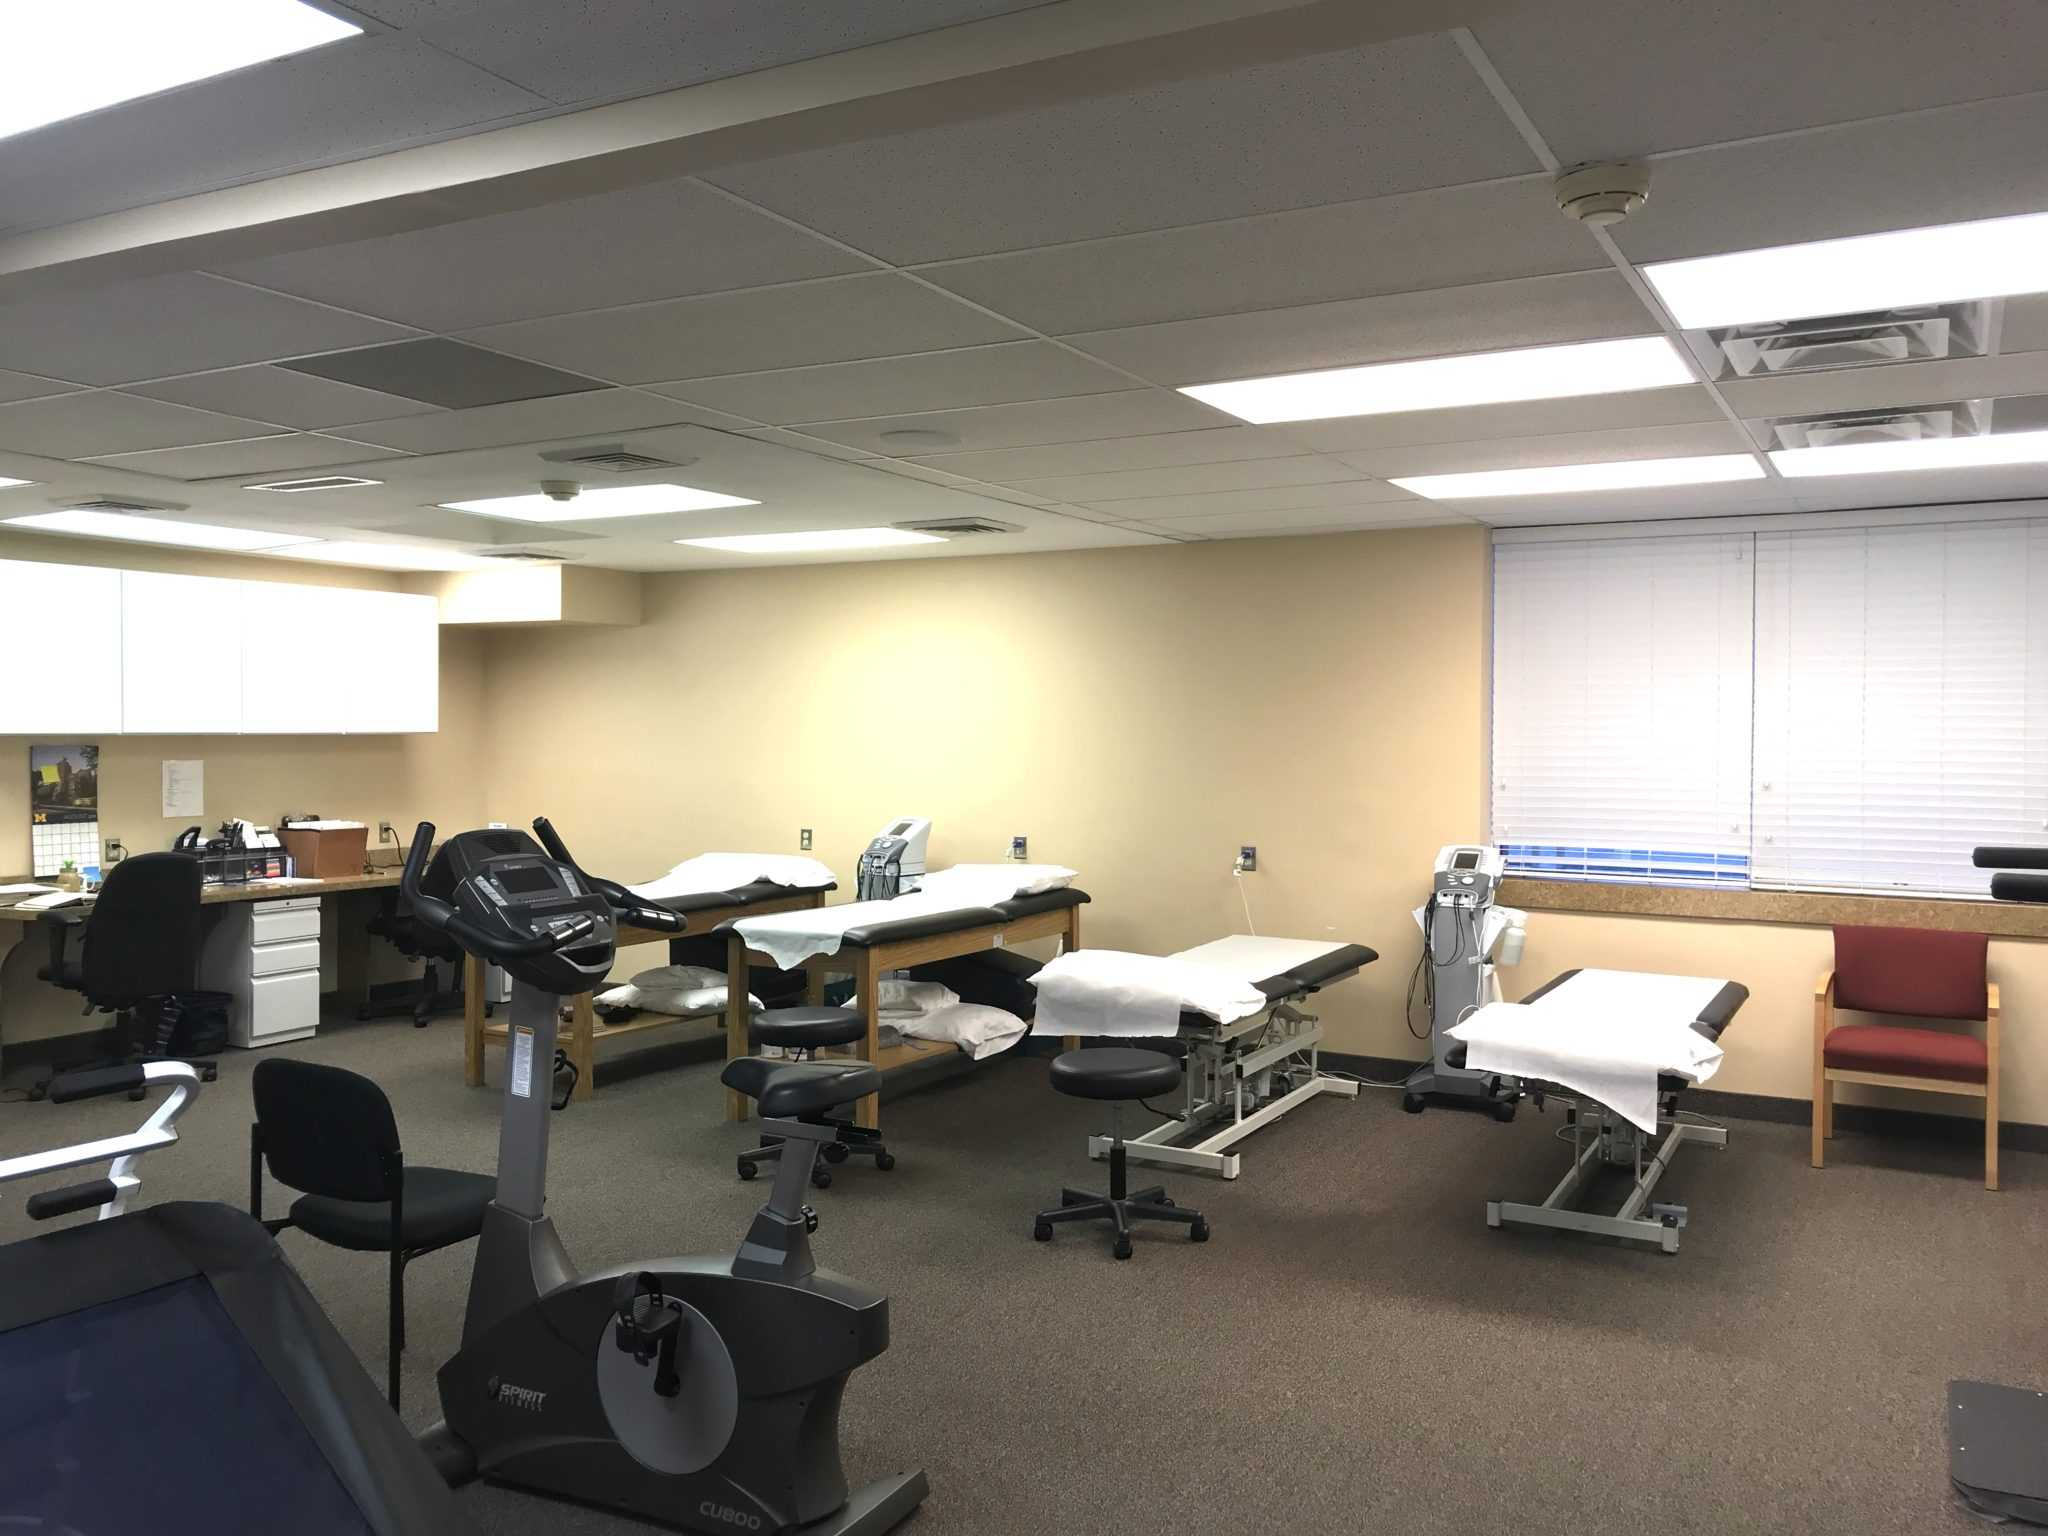 Bethesda Physical Therapy - Kensington Location Gym